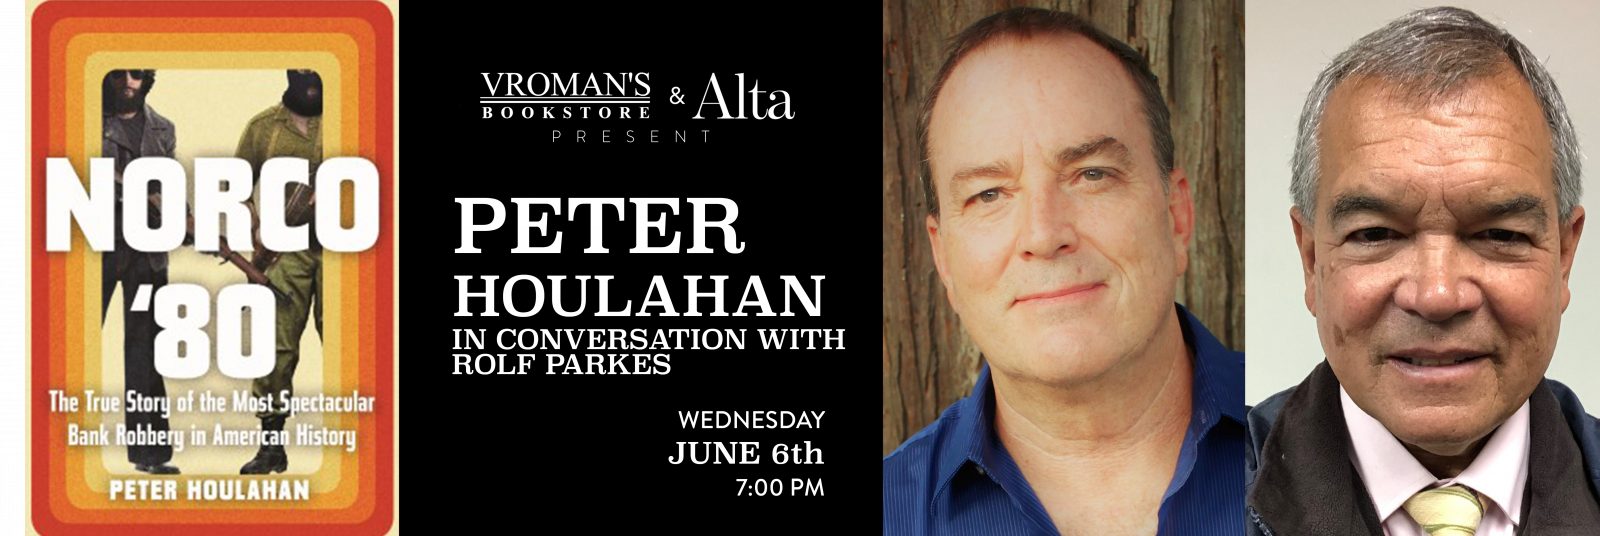 Peter Houlahan, in conversation with Deputy Sheriff Rolf Parkes Wednesday June 6th at 7pm